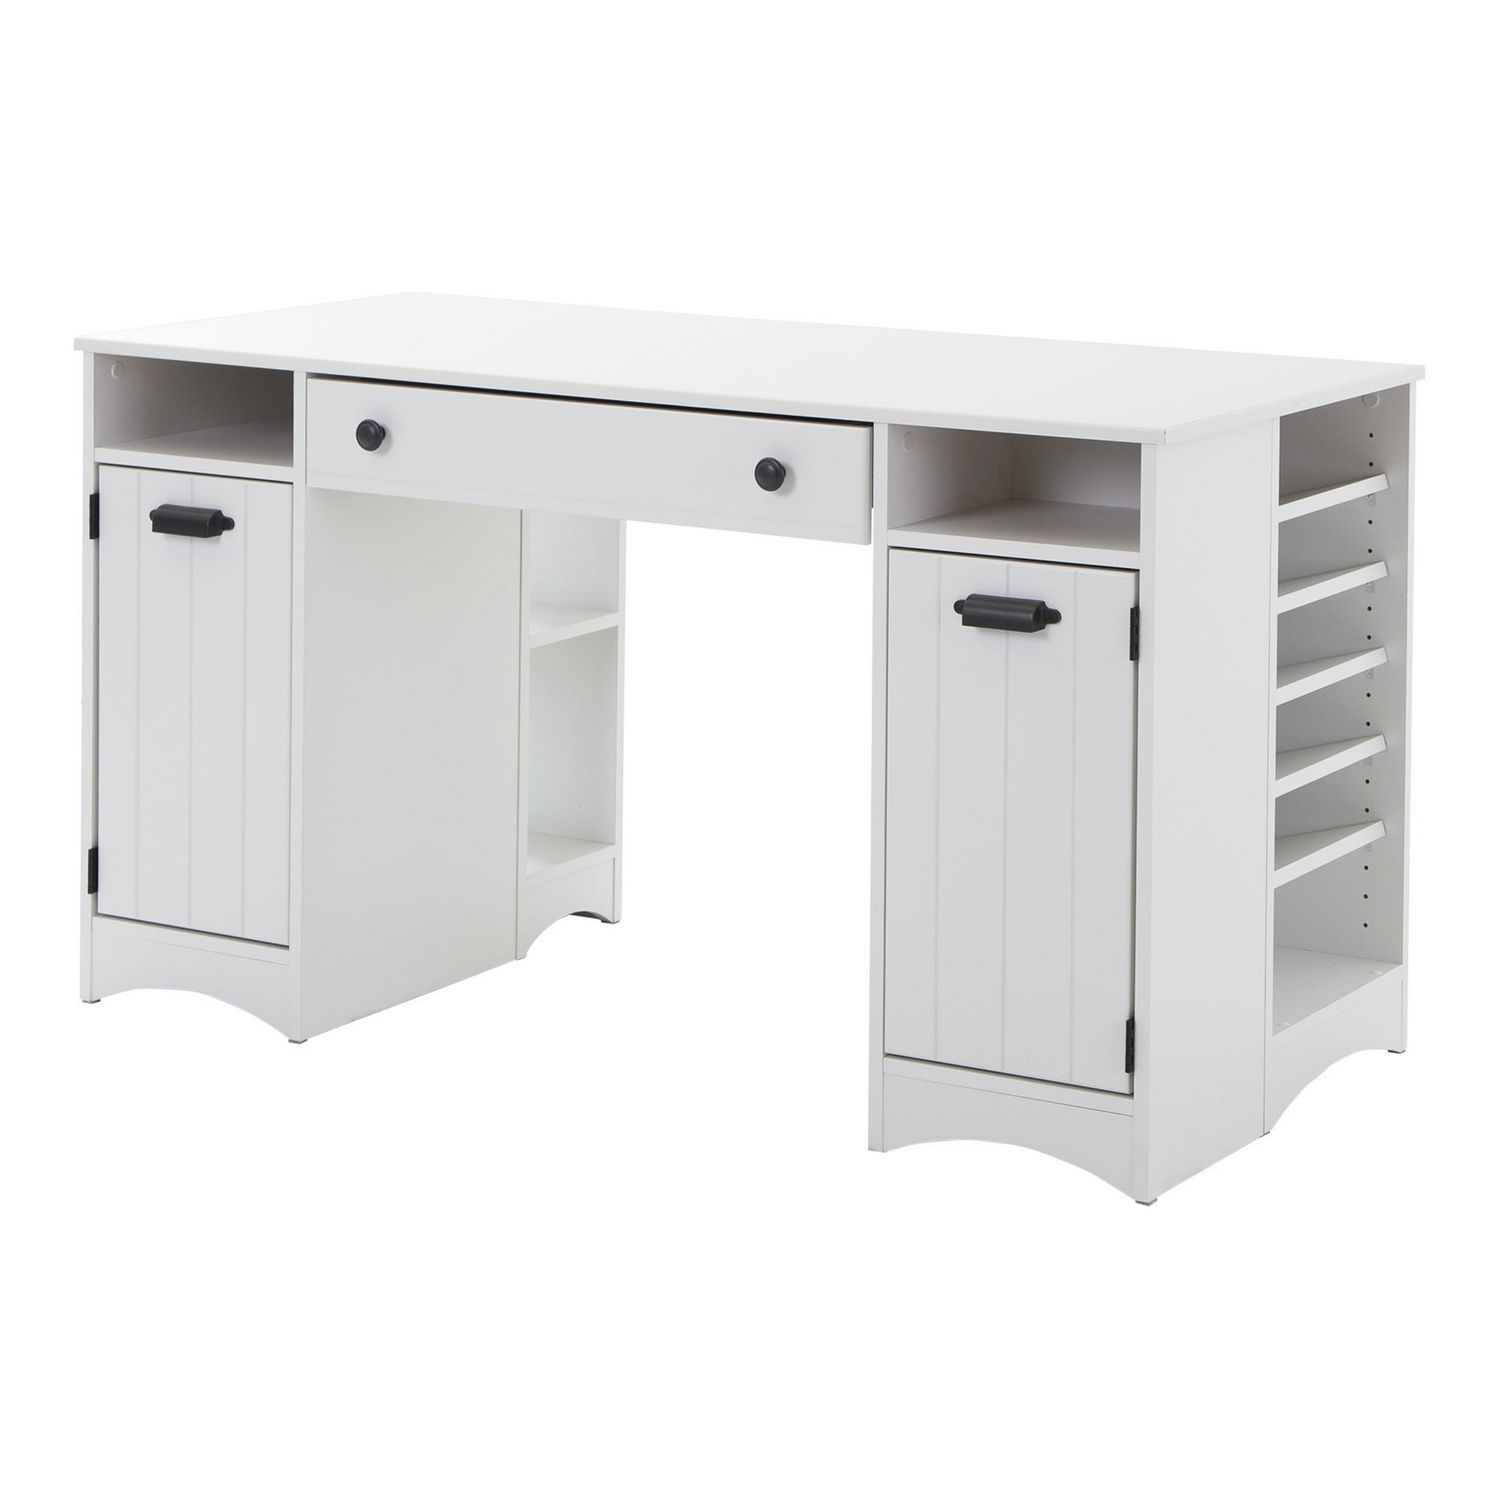 South Shore Artwork Craft Table With Storage, Pure White | Walmart Canada